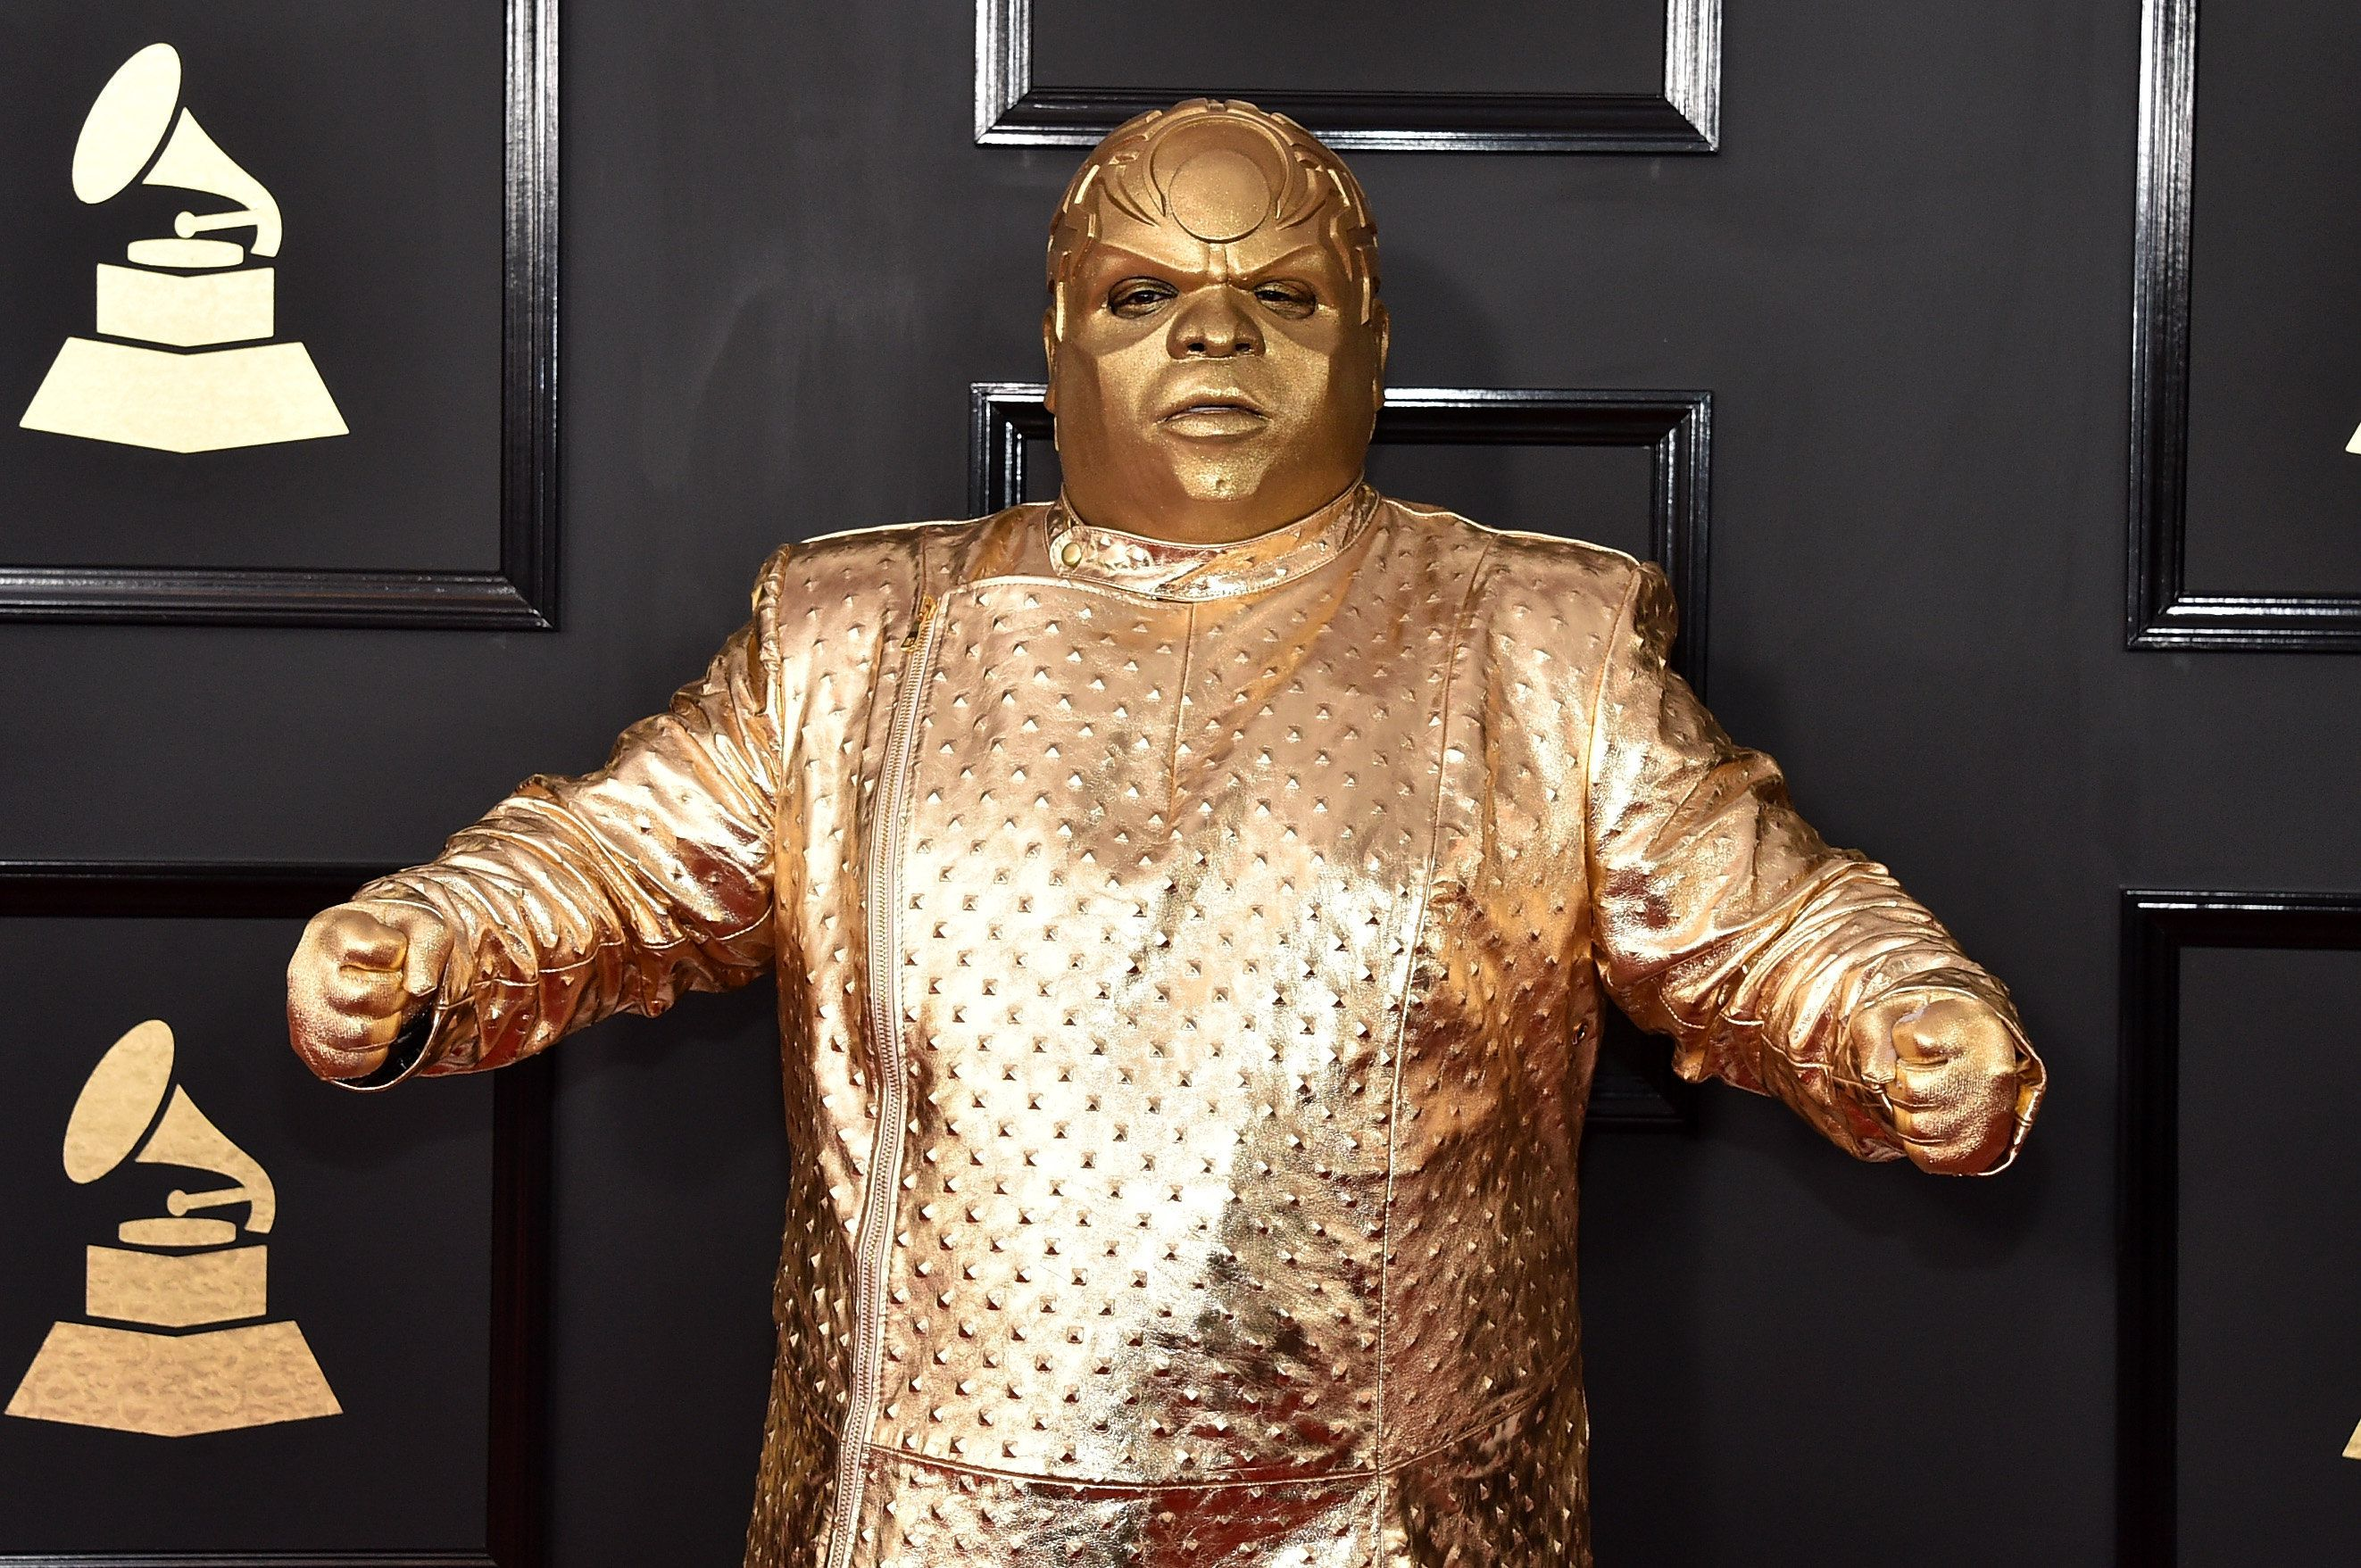 58a1cbe2250000b54d0b8a1d?ops=scalefit_720_noupscale ceelo green's grammys outfit got meme'd faster than you can say